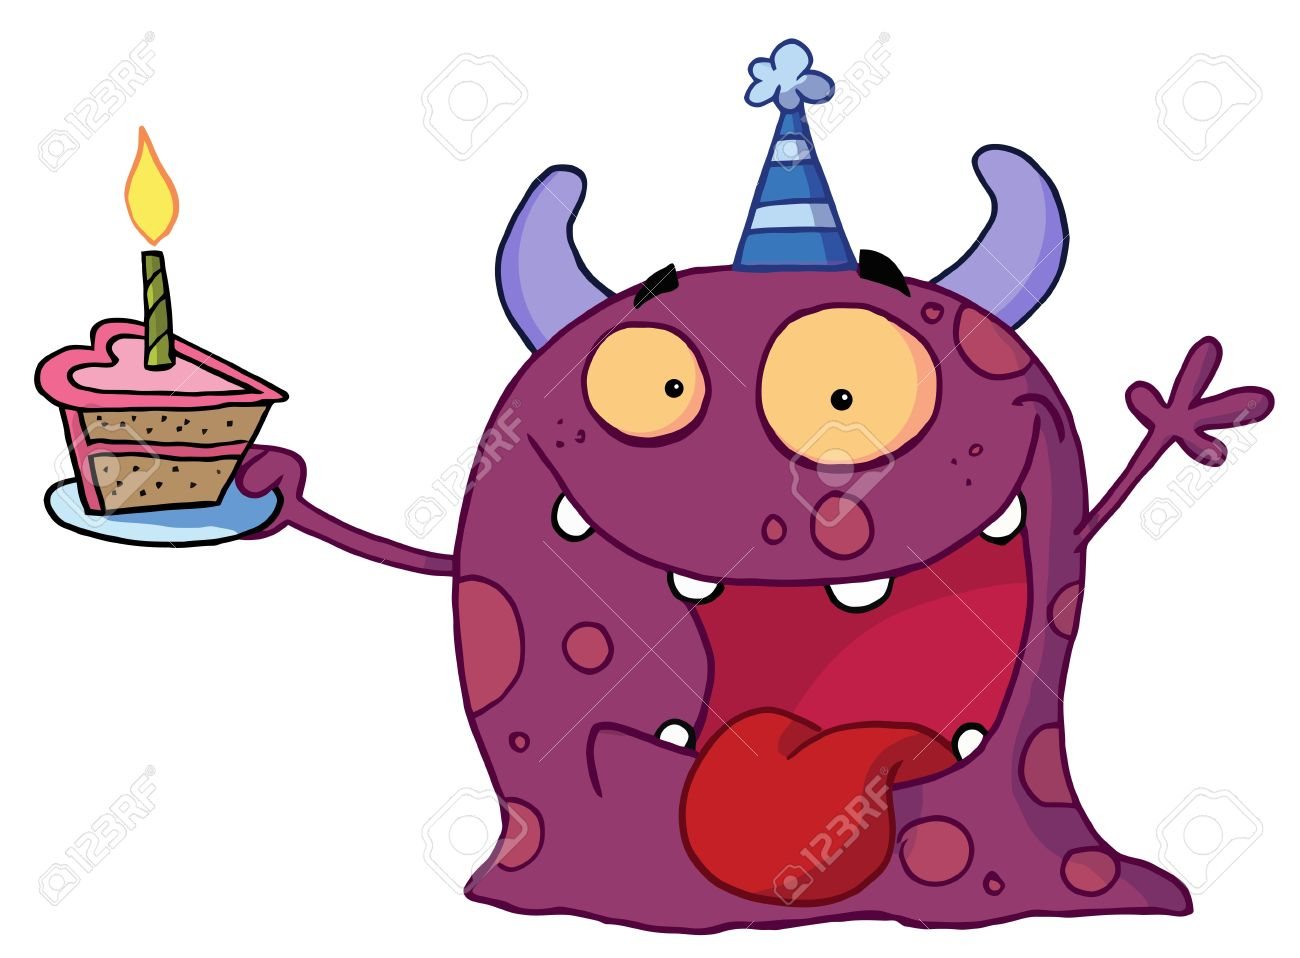 Purple slice cake art clipart graphic royalty free stock Spotted Purple Birthday Monster Wearing A Party Hat And Holding ... graphic royalty free stock